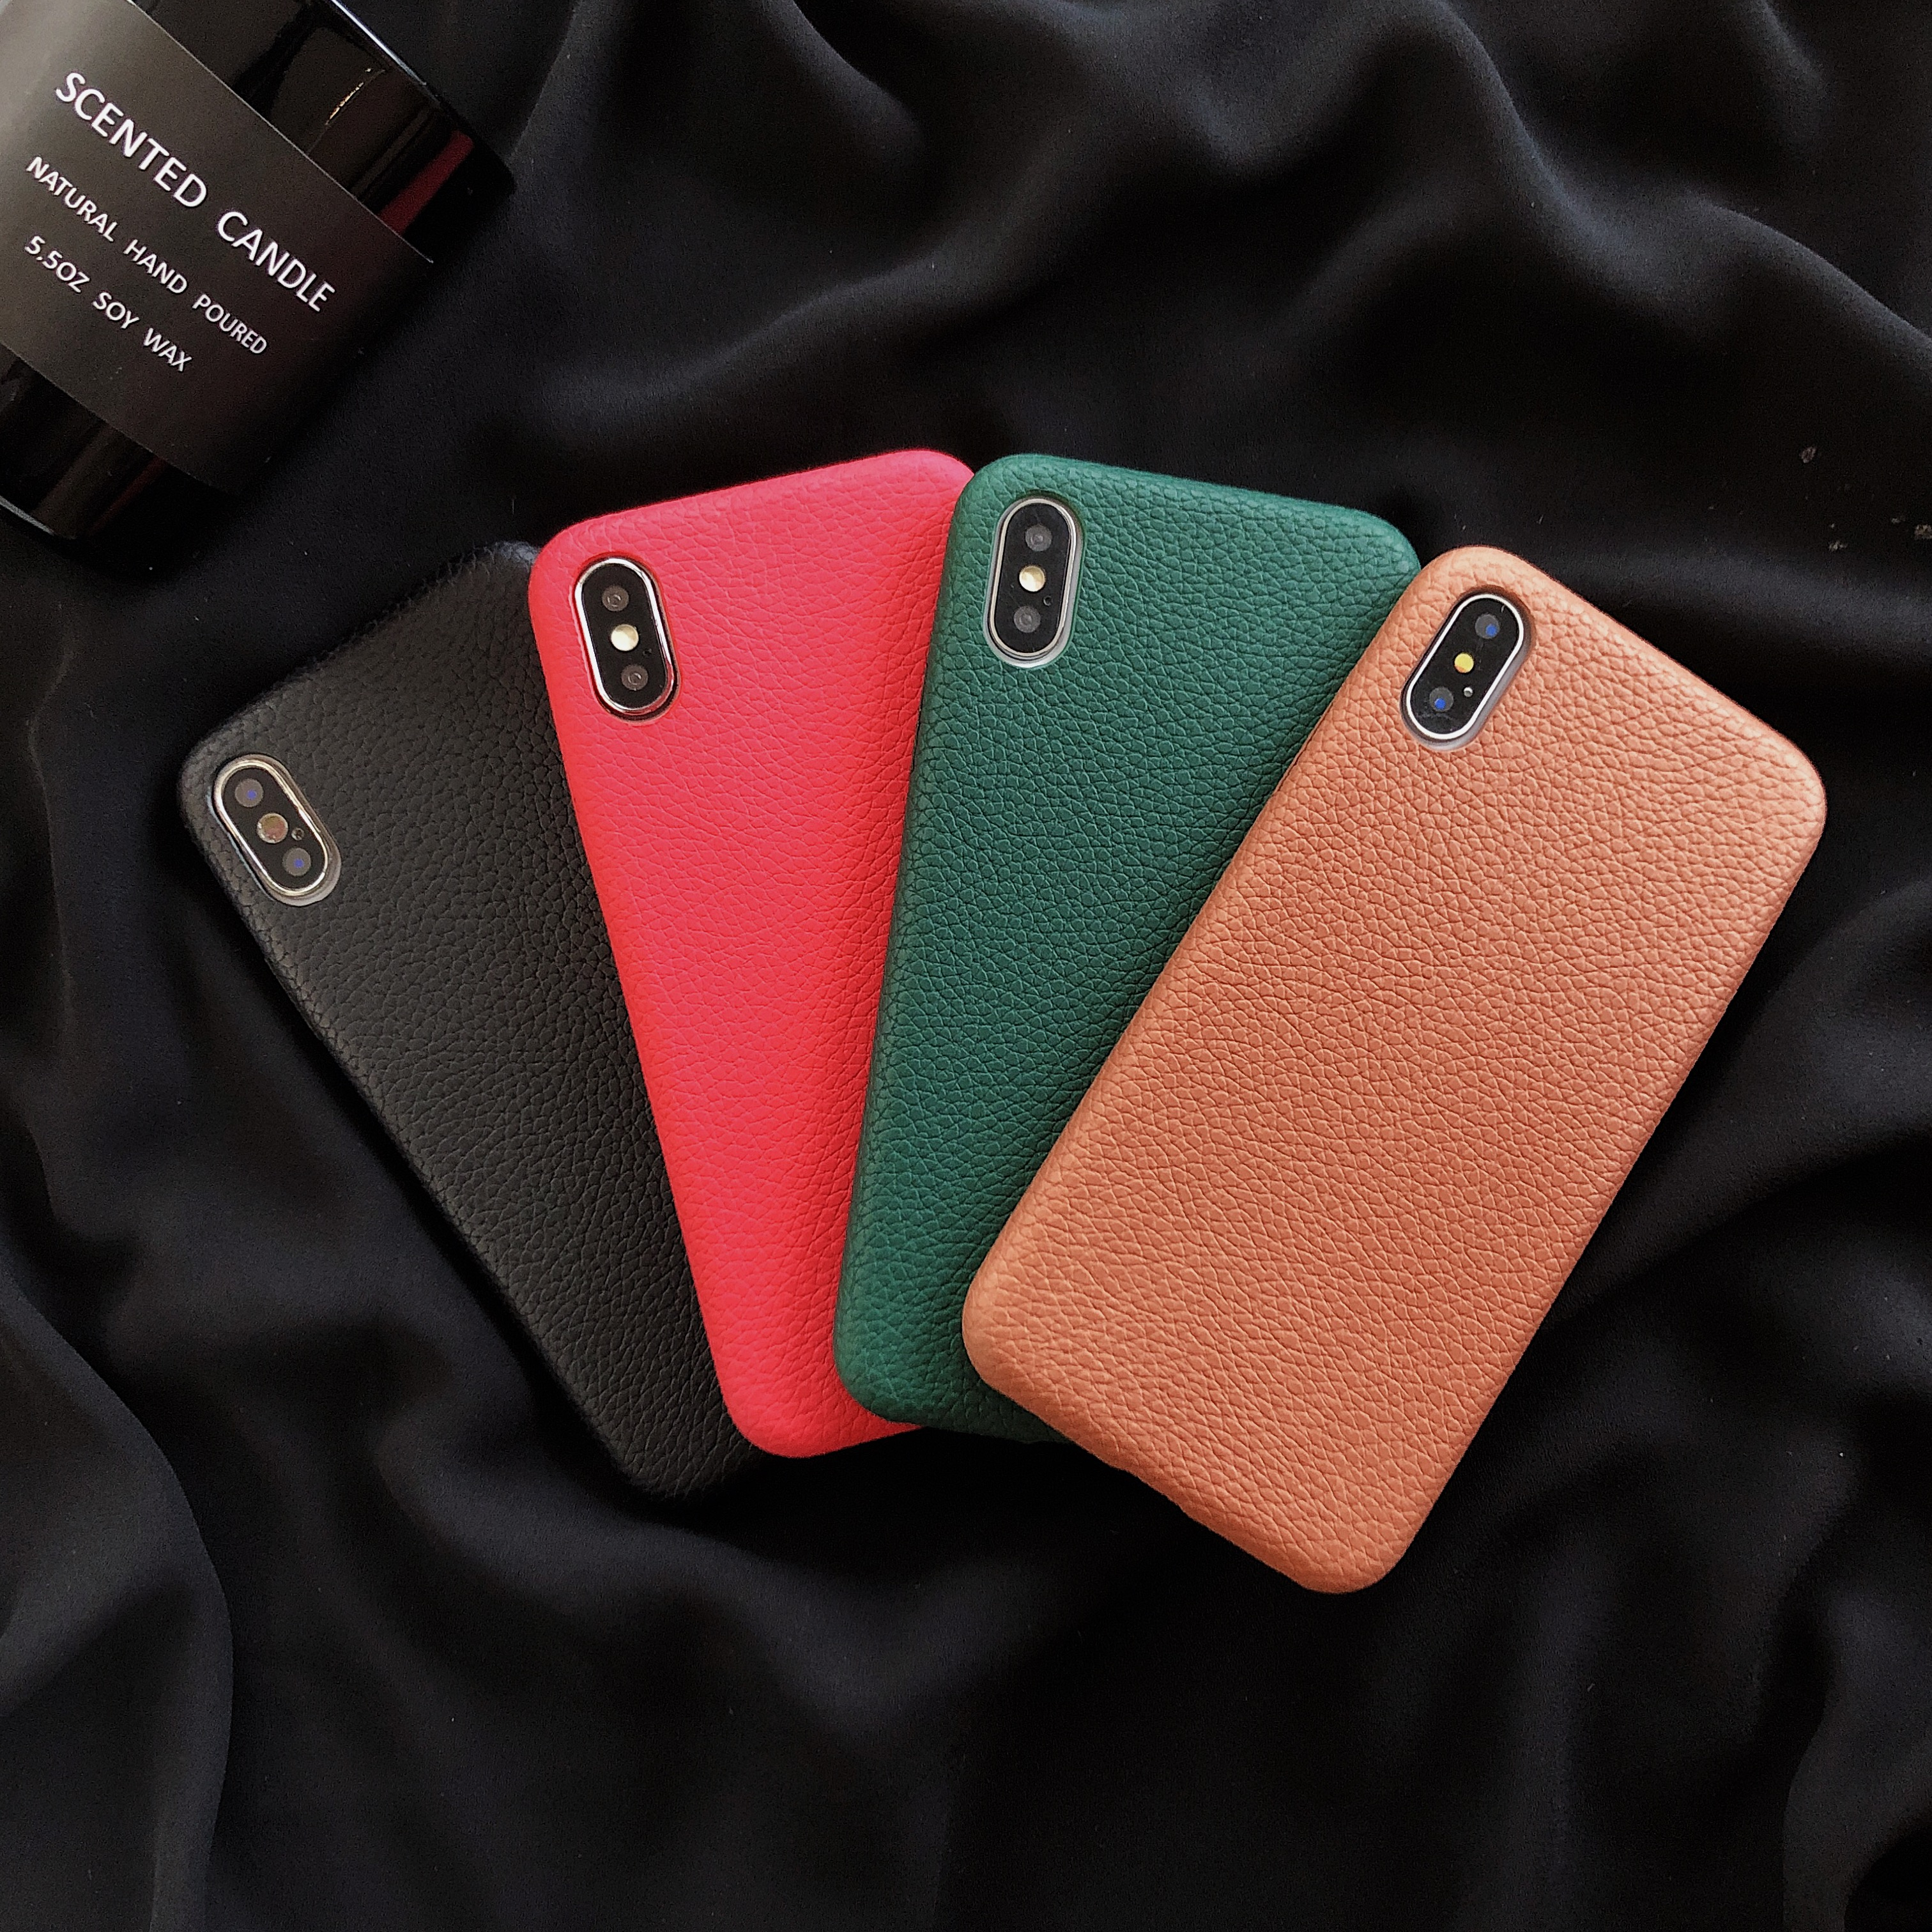 Solid Color <font><b>Case</b></font> for <font><b>iPhone</b></font> XS MAX XR X Candy Color Phone <font><b>Cases</b></font> for <font><b>iPhone</b></font> 7 6 <font><b>6S</b></font> 8 Plus Soft <font><b>Leather</b></font> cover Shell Cover for <font><b>case</b></font> image